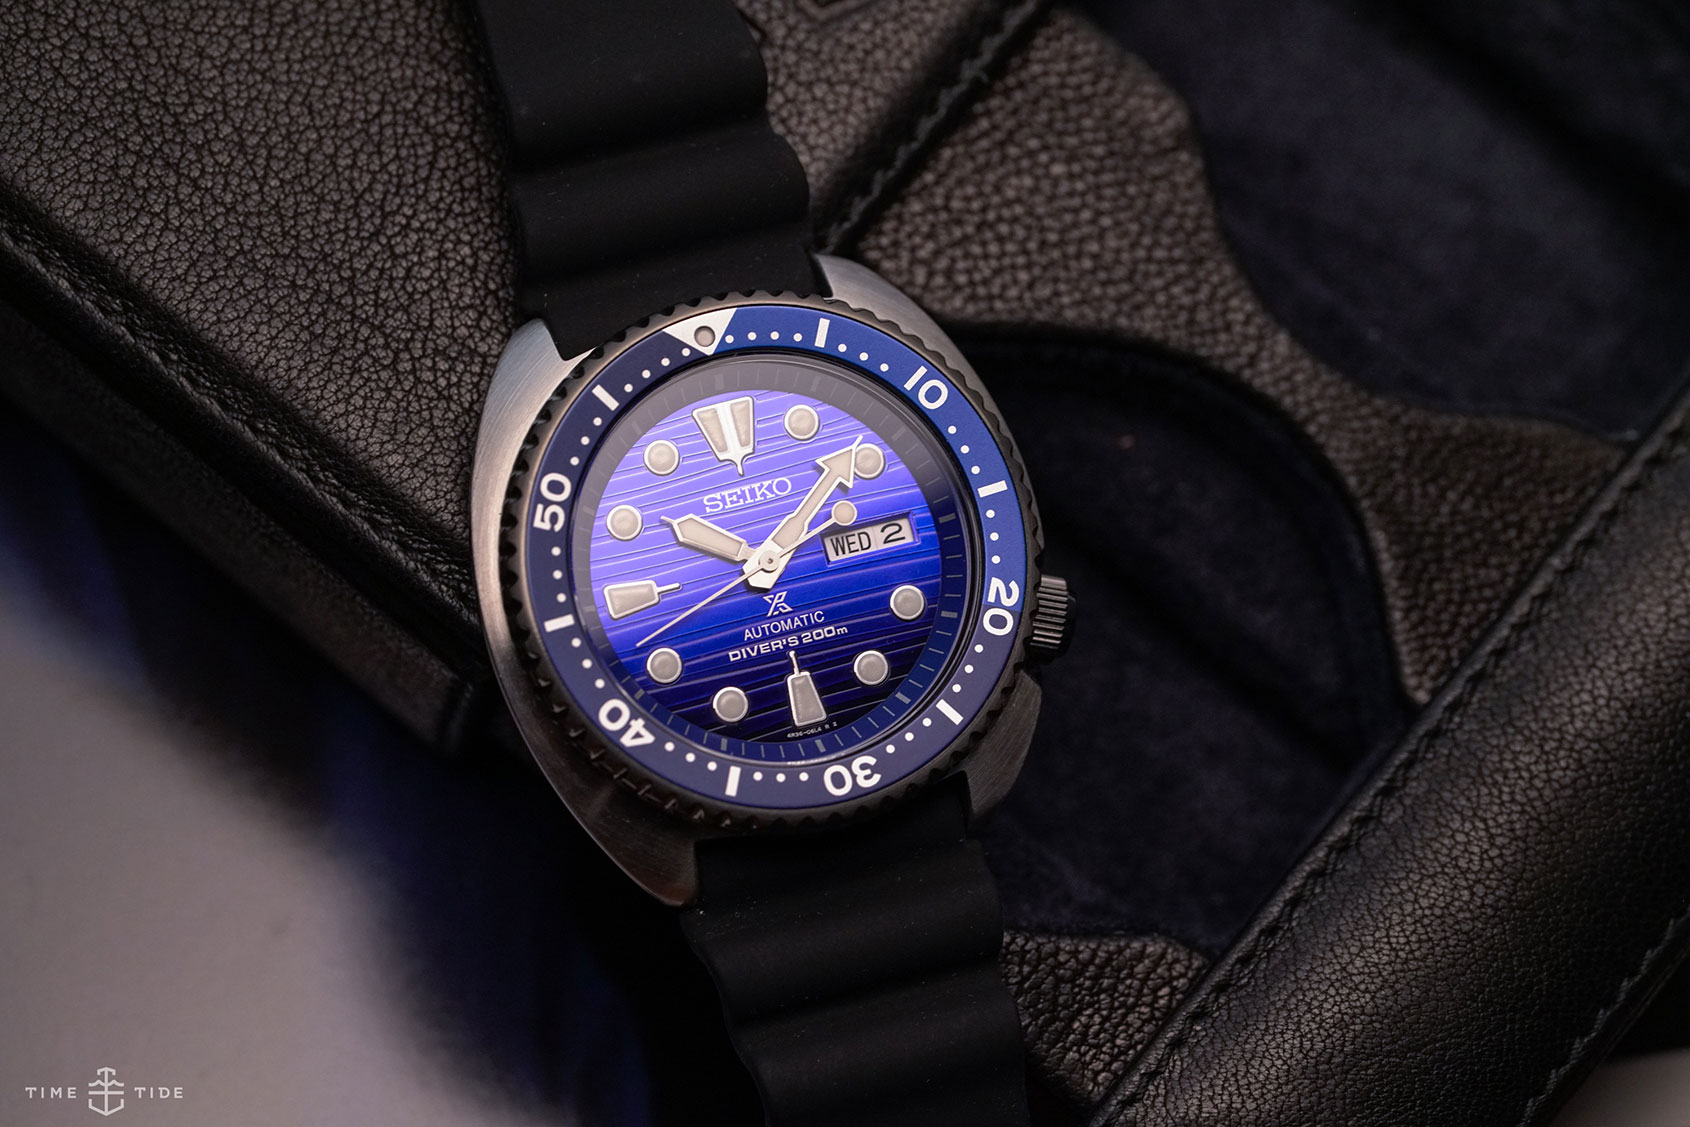 HANDS-ON: The Seiko Prospex 'Save the Ocean' SRPC91K1 – the ocean hero in a half shell